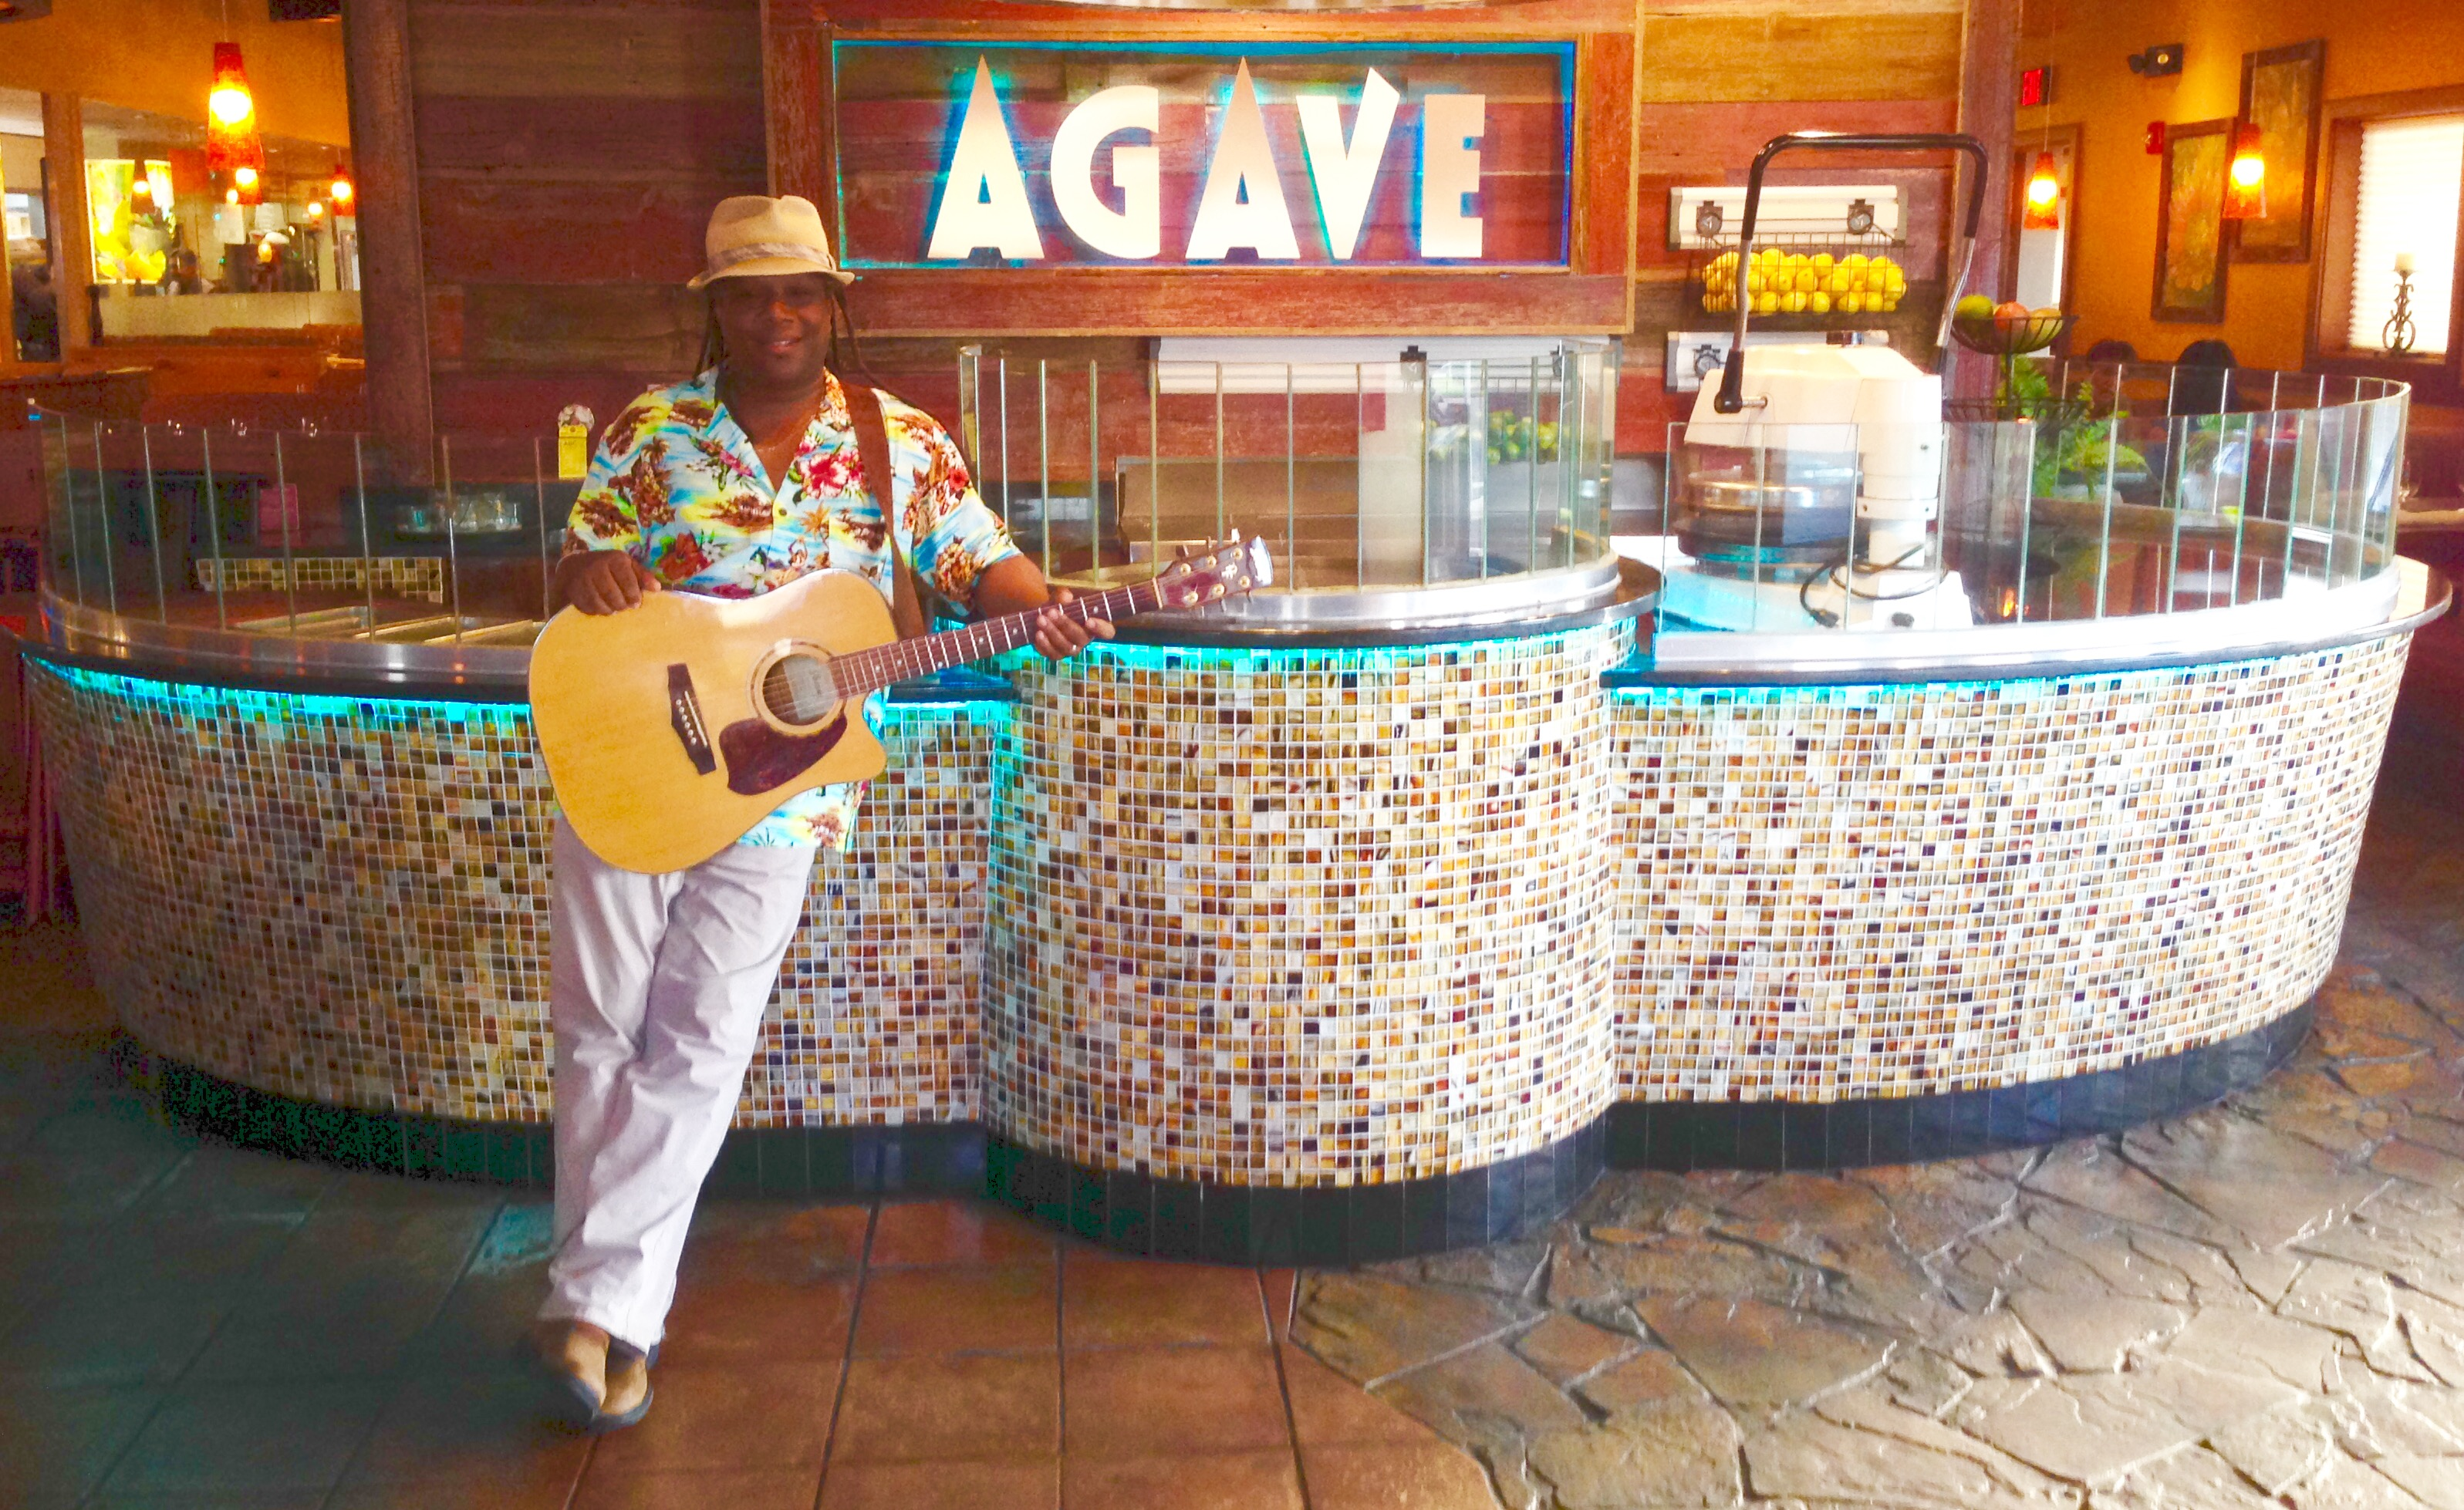 agave promo for newsletter